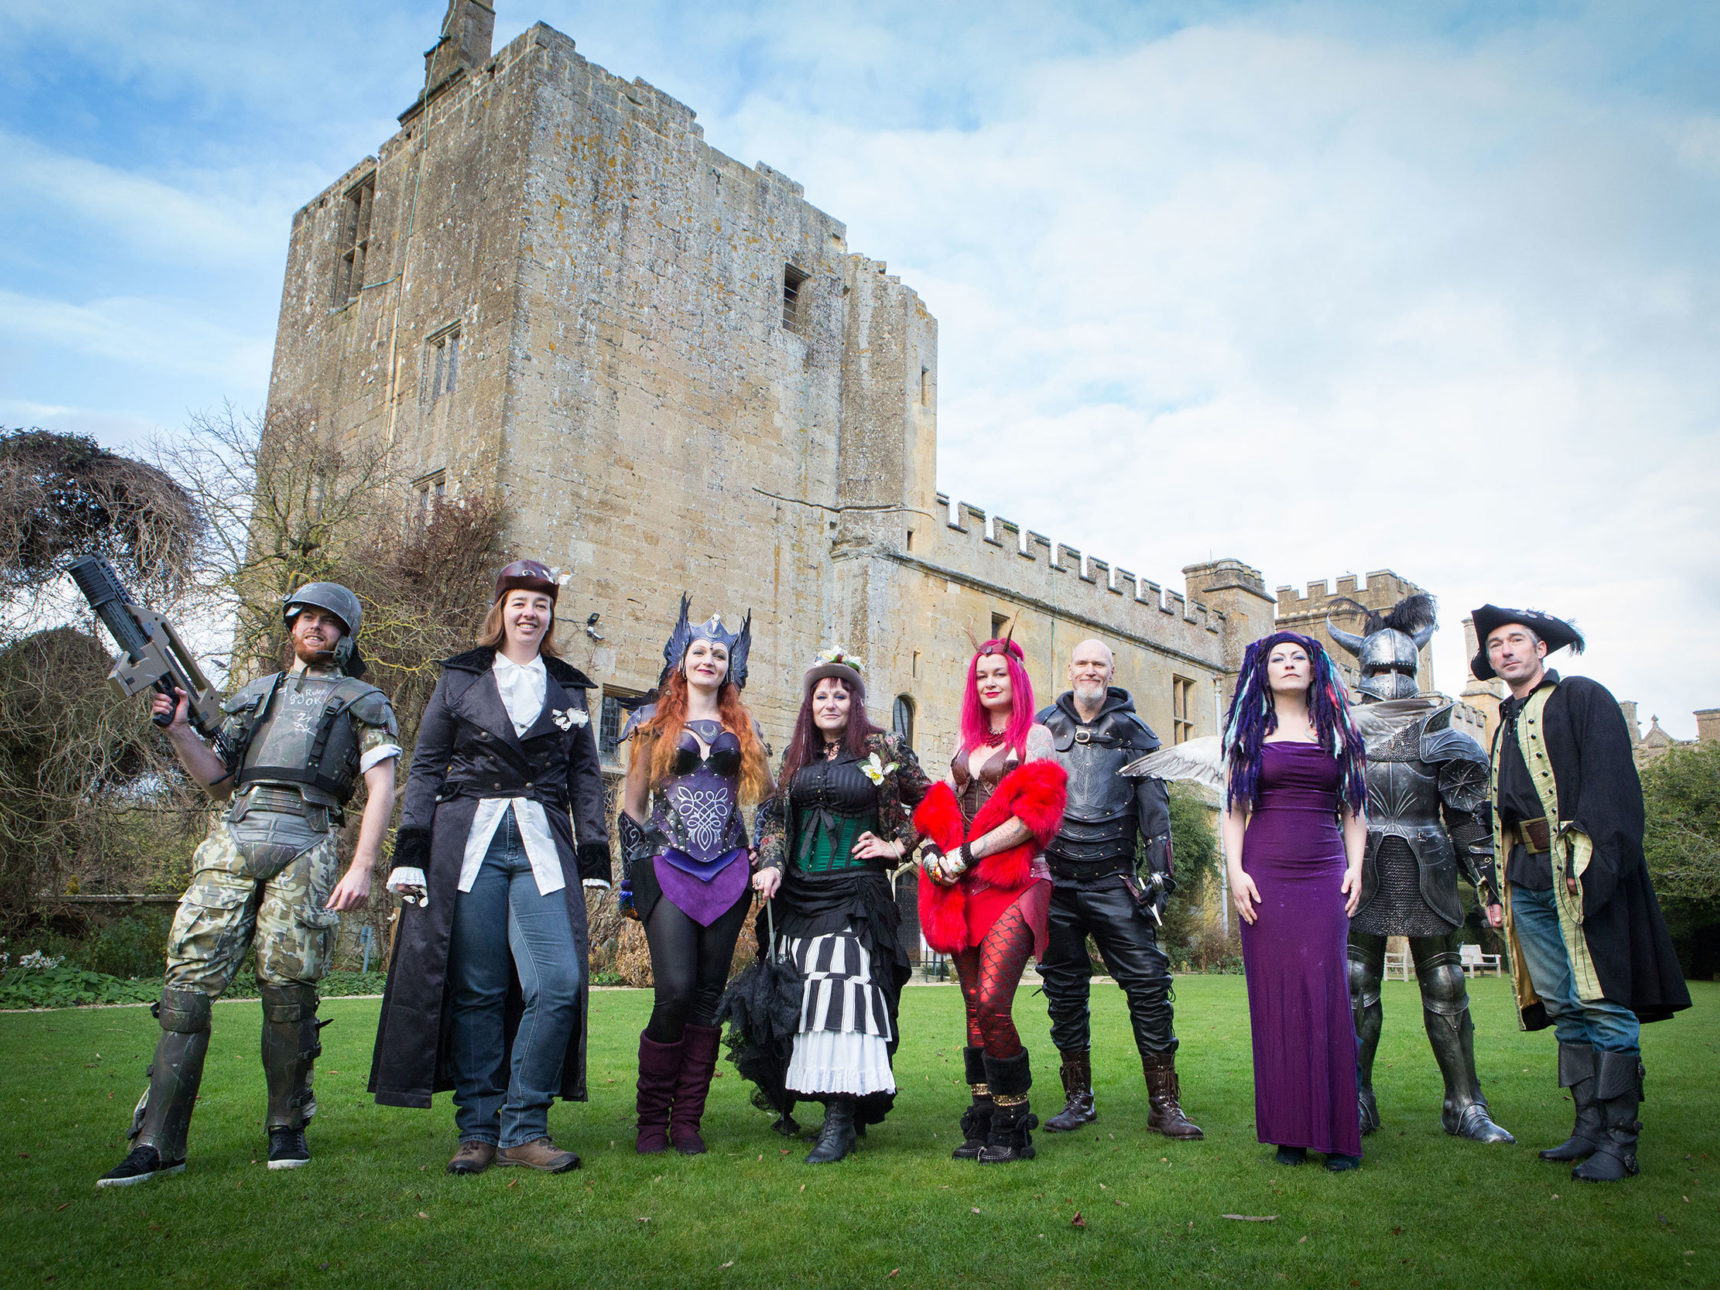 Costumed performers stand in front of castle